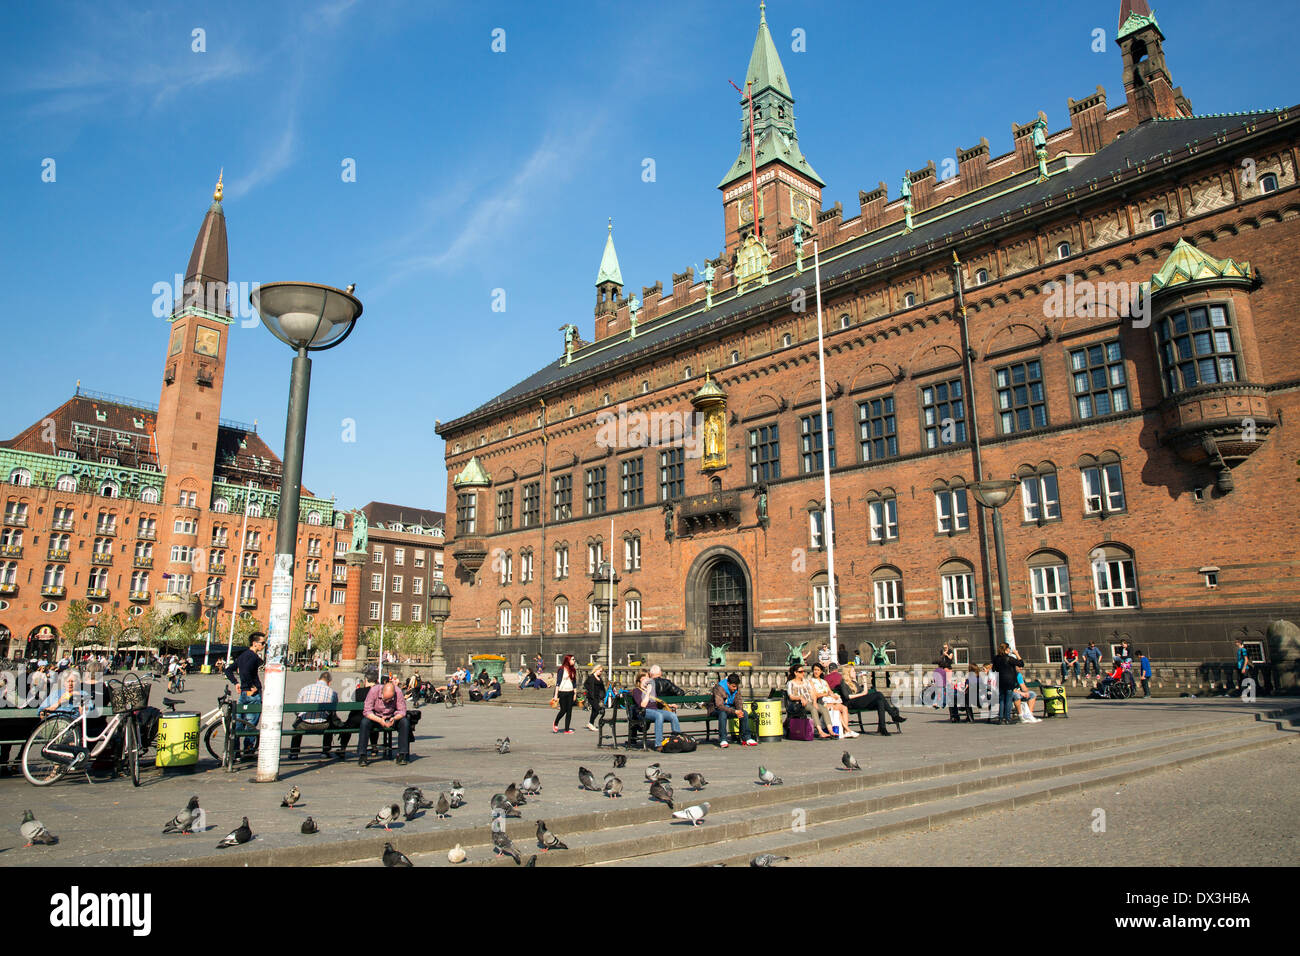 radhuspladsen is a large public square in the centre of copenhagen stock photo 67691662 alamy. Black Bedroom Furniture Sets. Home Design Ideas